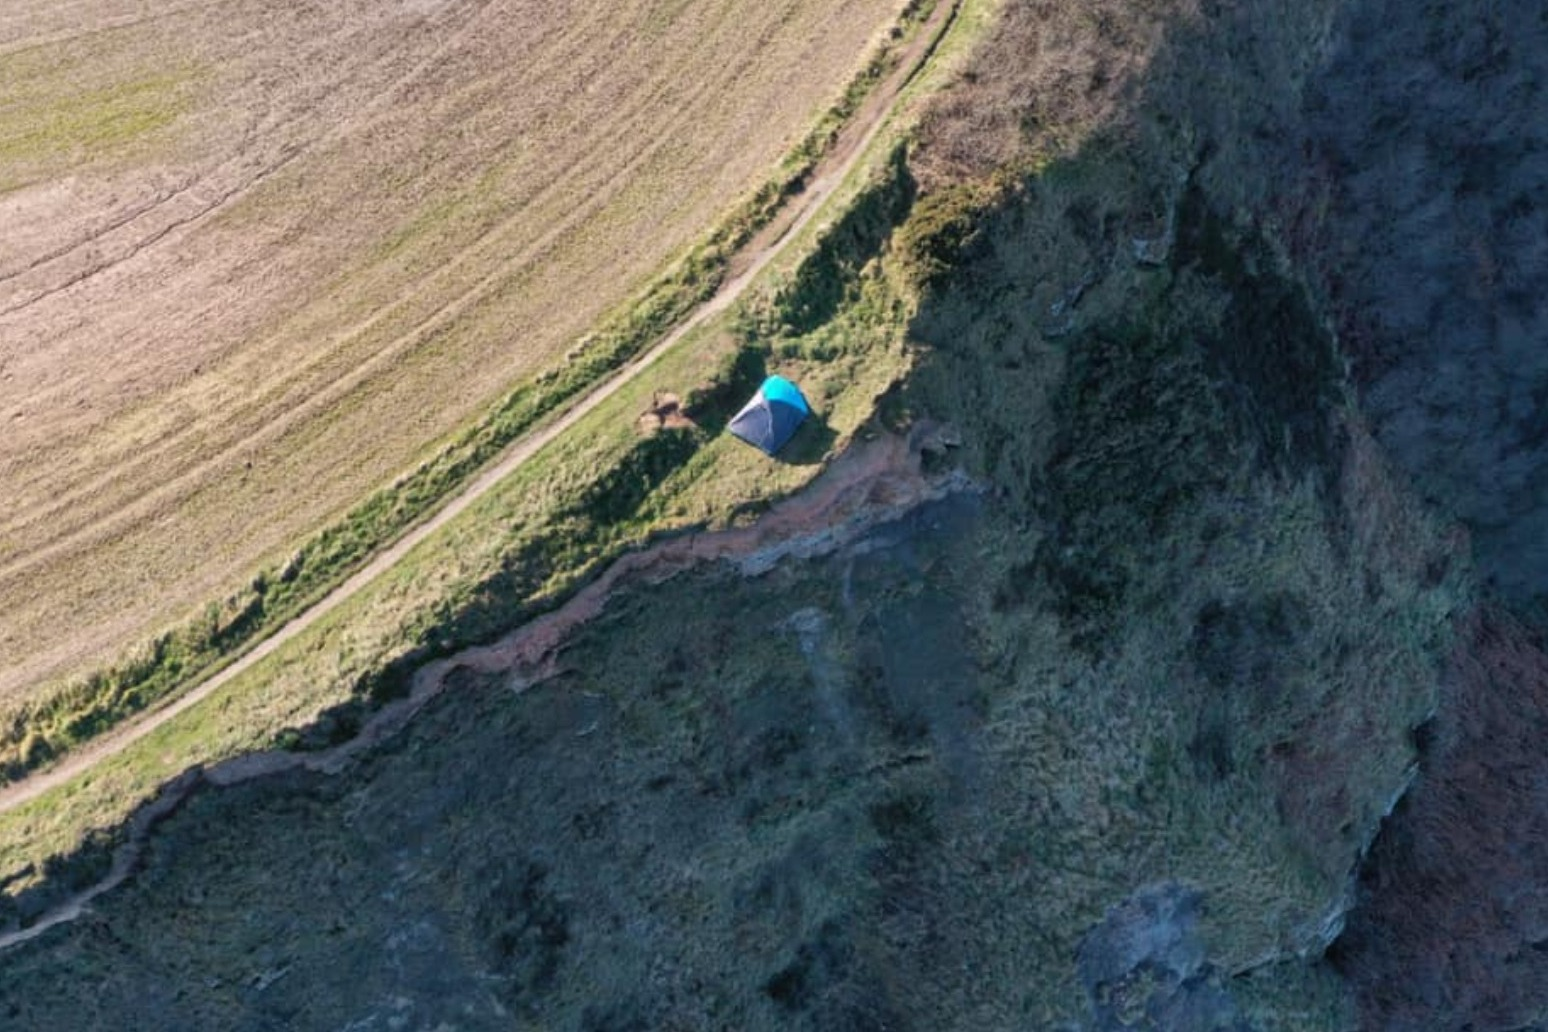 FAMILY CAMPING ON 280FT CLIFF-TOP HAD 'NO IDEA OF EXTREME DANGER'